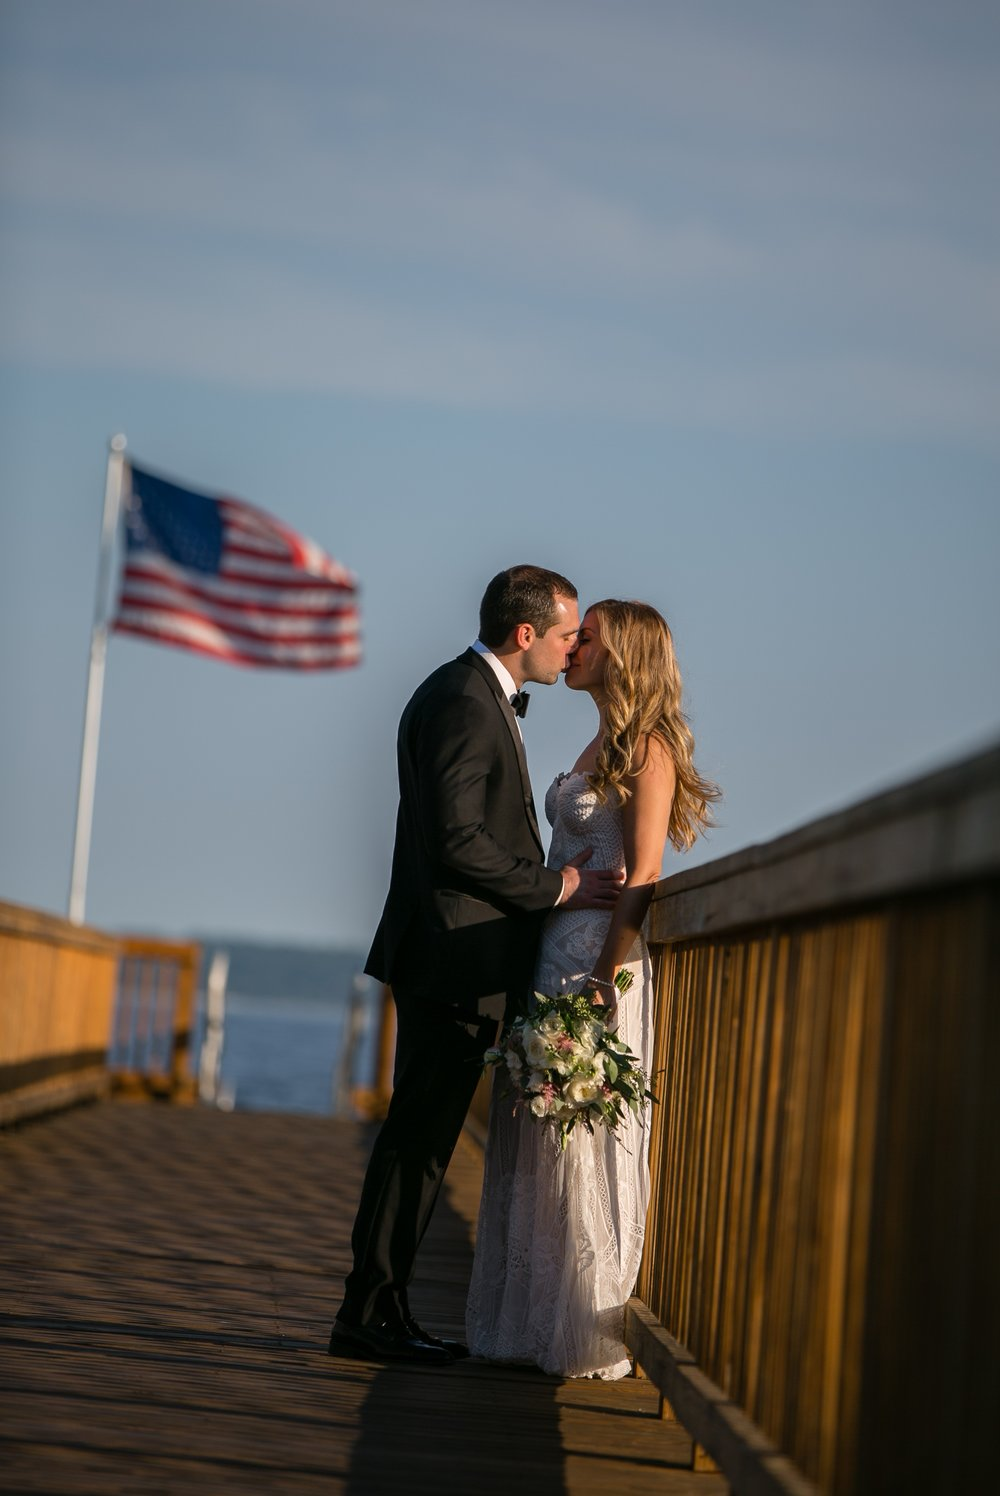 Wedding portraits on pier at Coveleigh Club in Rye, New York